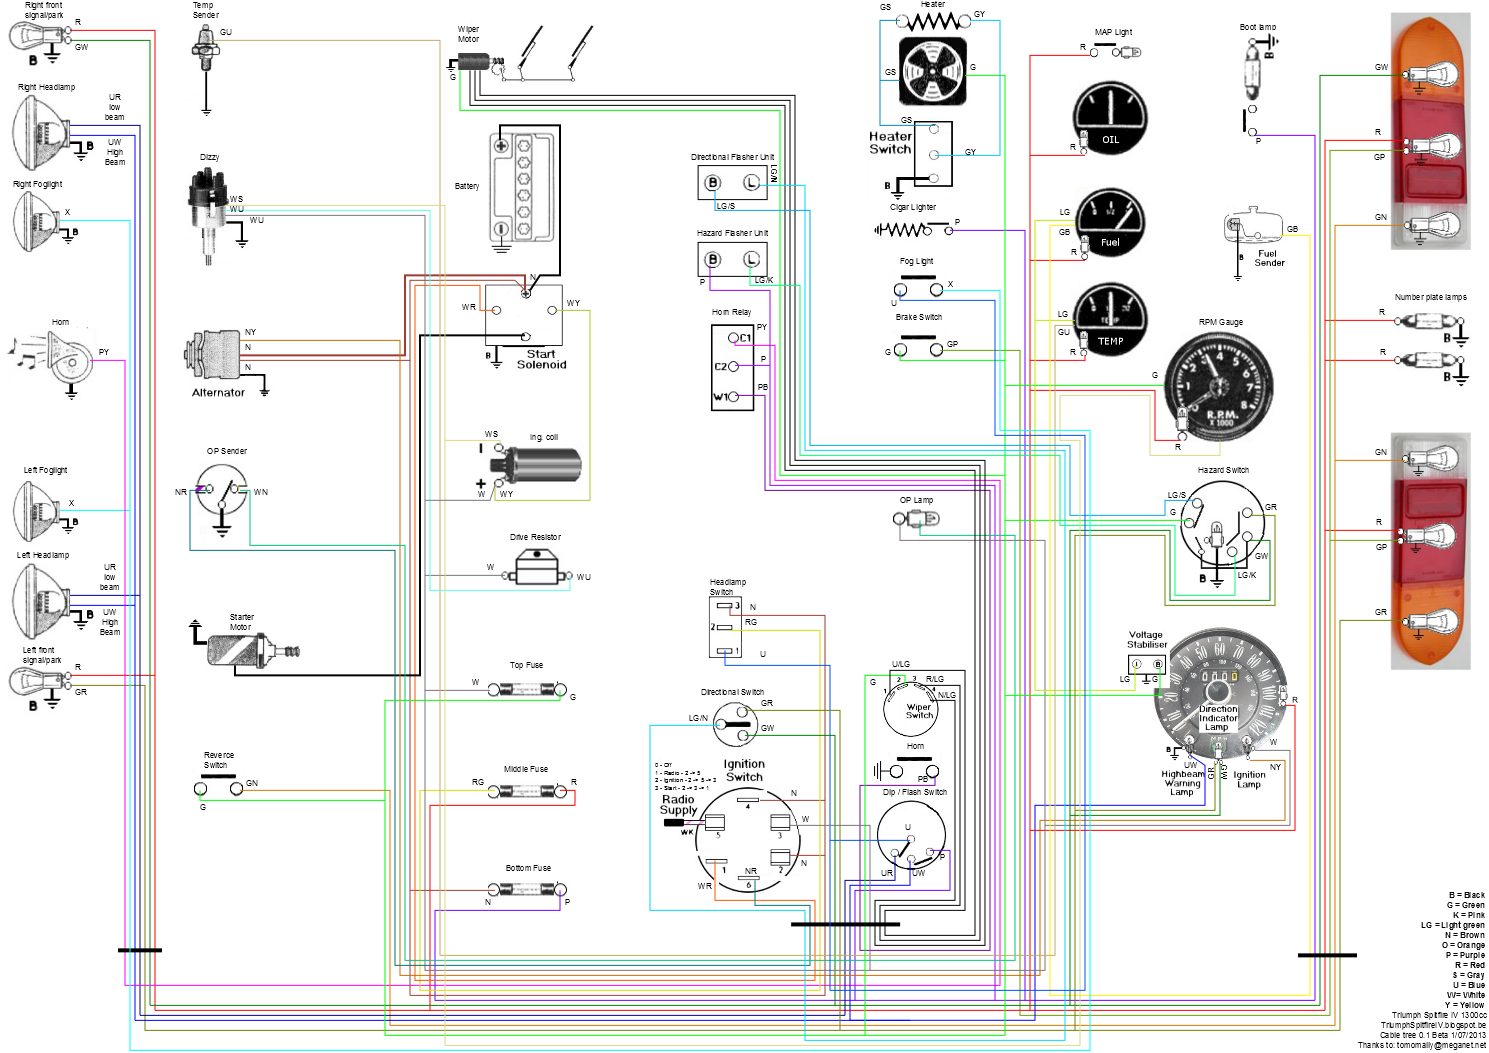 Schema triumph t120 wiring diagram wiring diagram simonand 2012 triumph bonneville wiring diagram at n-0.co